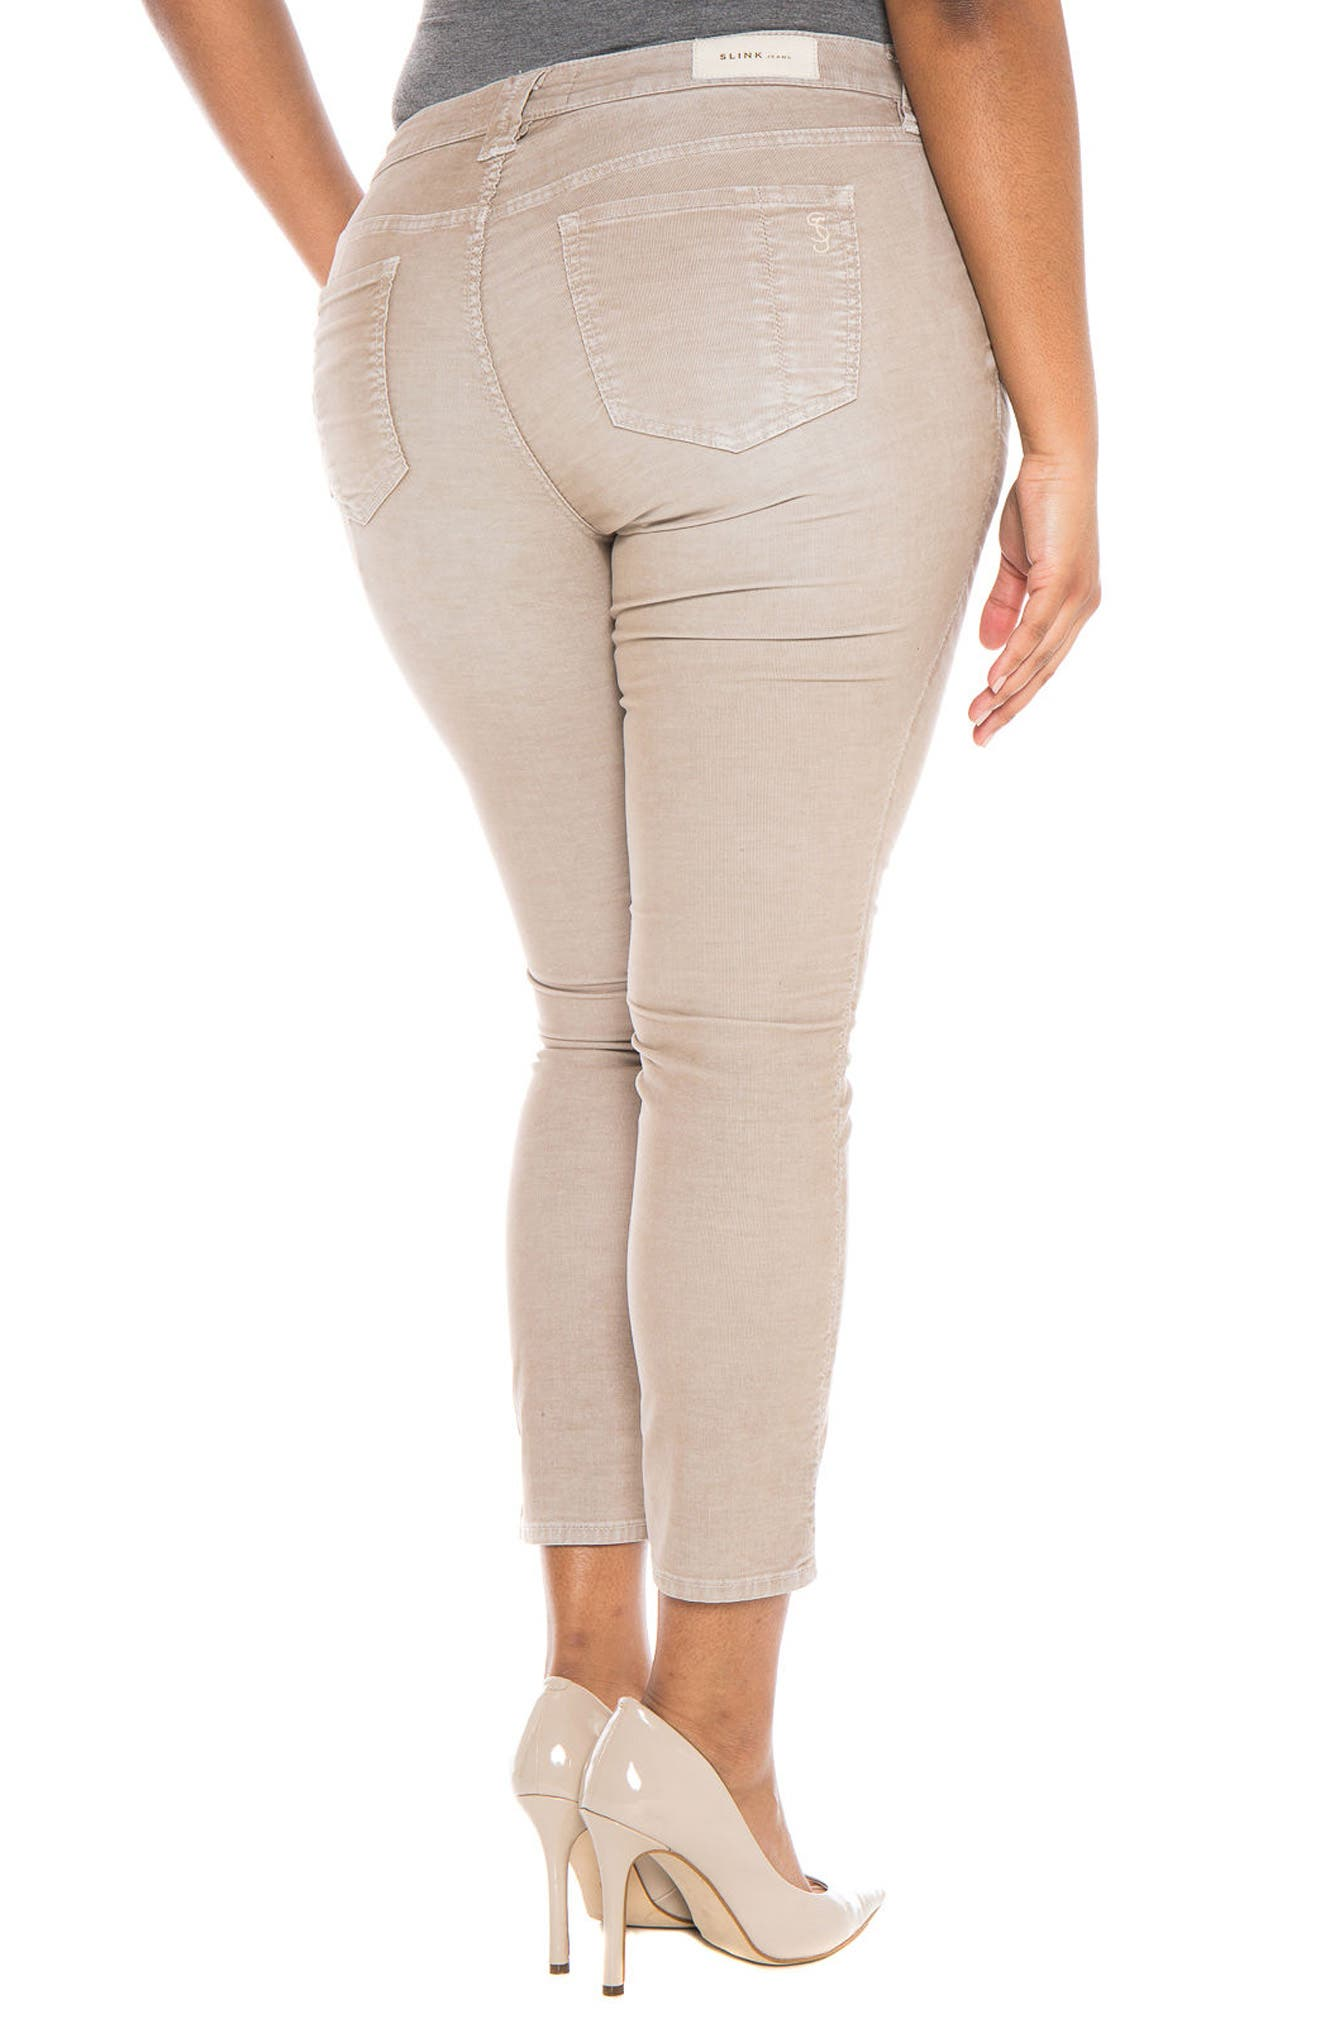 Alternate Image 3  - SLINK Jeans Stretch Corduroy Cropped Skinny Pants (Plus Size)